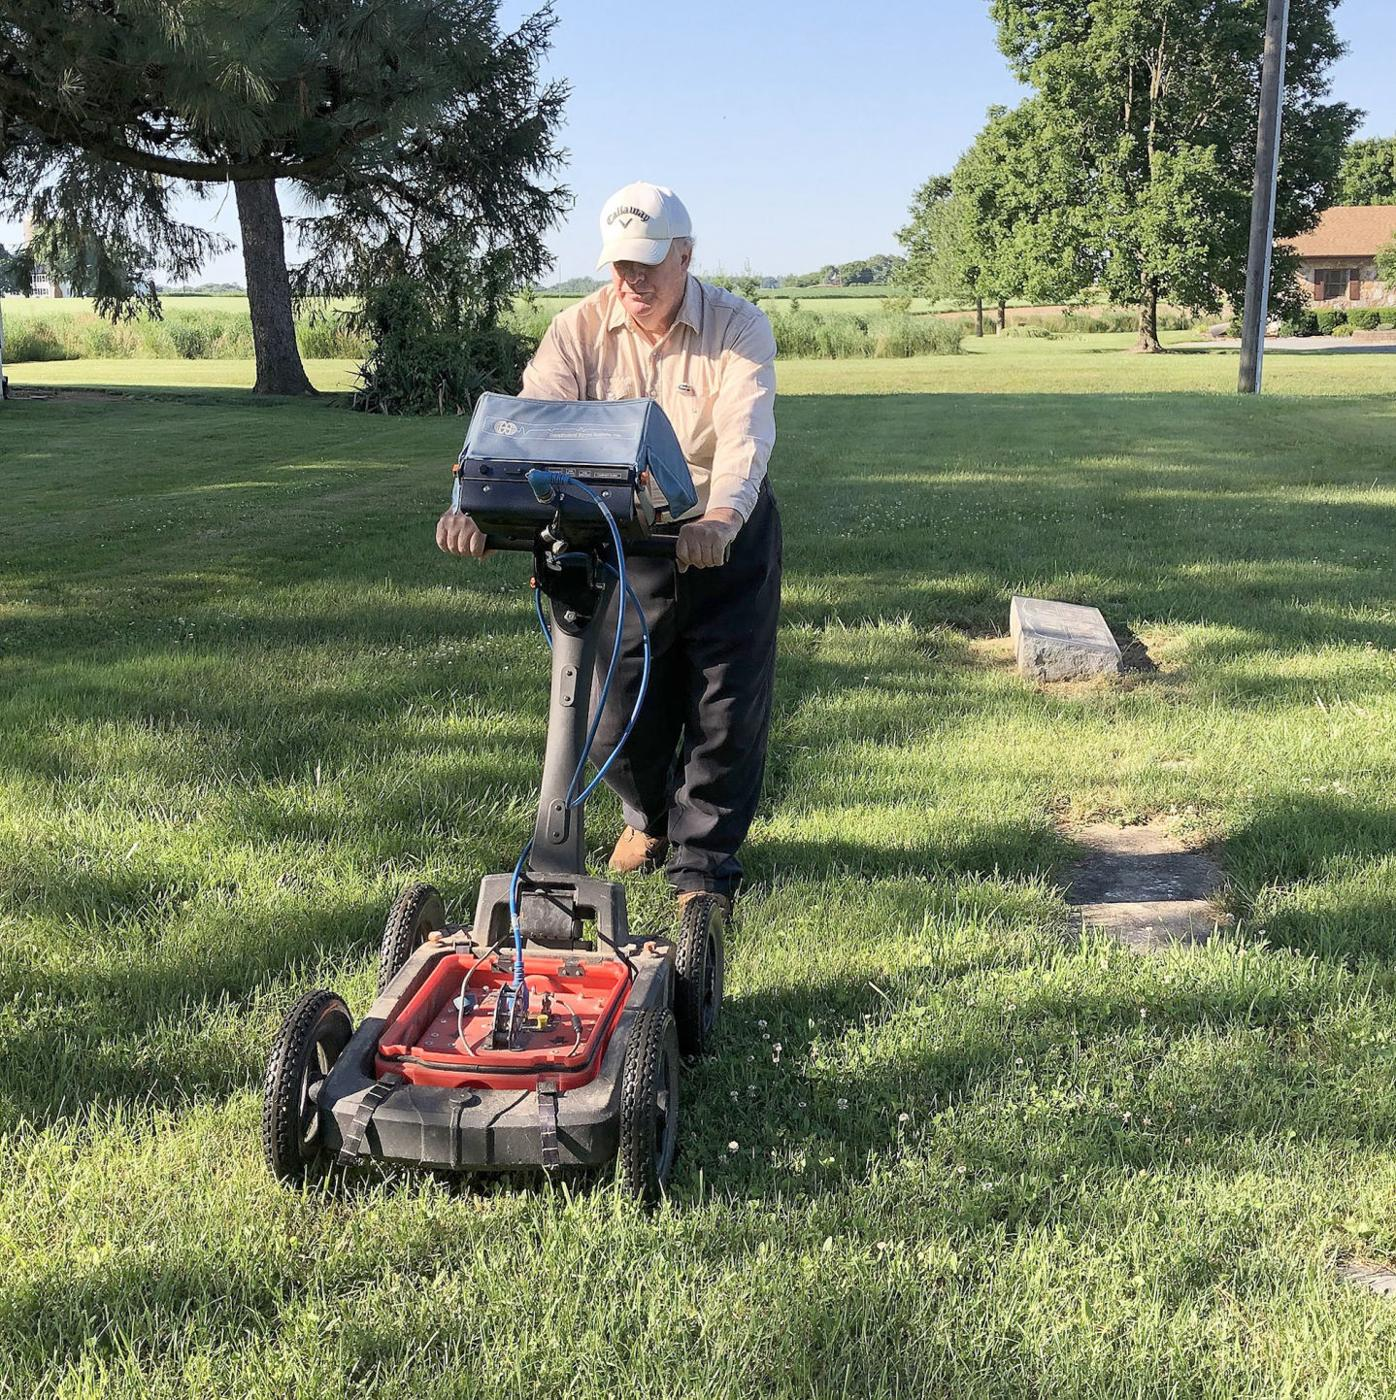 64 unmarked graves found at old local cemetery